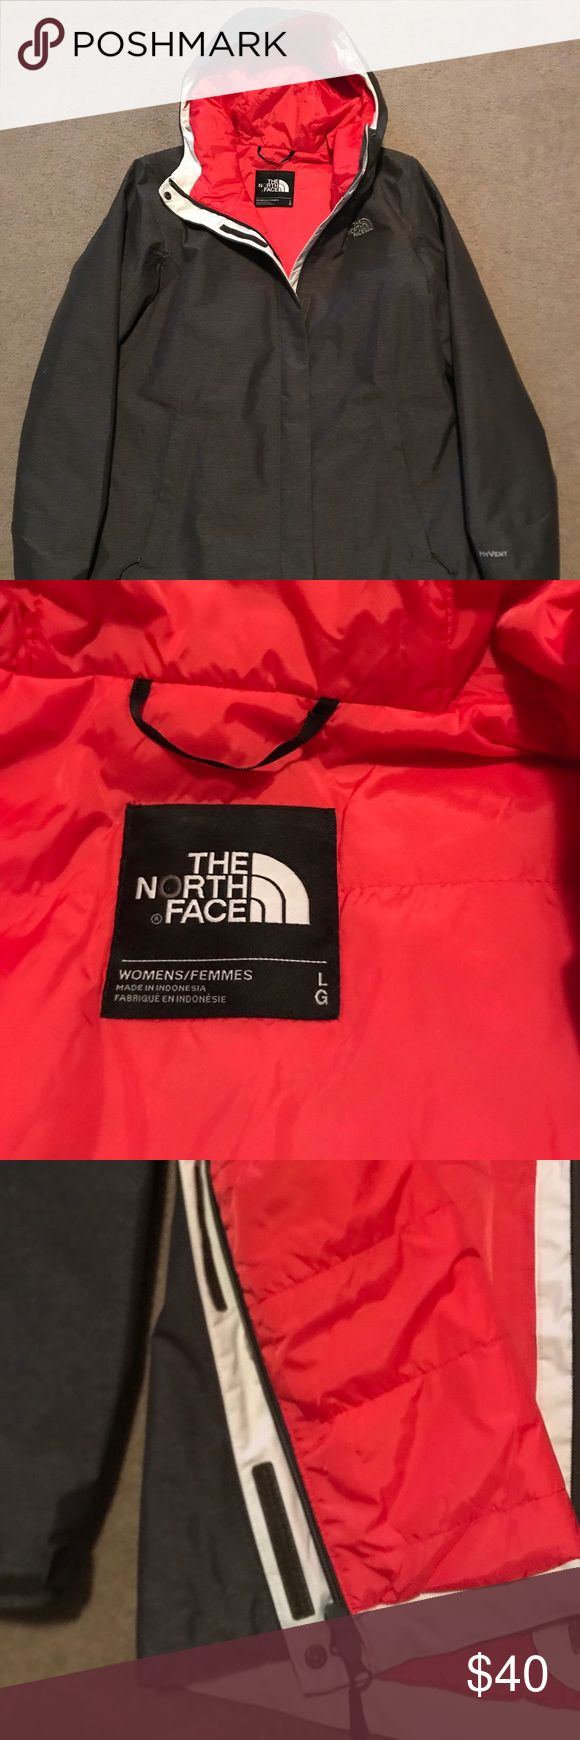 """NWOT North Face jacket New North Face jacket. Tags were removed but it is new. Warm with quilted type material on inside that is a orange/red color and dark gray outside. Zipper closure but also velcro as pictured. Pit to pit is 22"""" and length 29"""". The North Face Jackets & Coats"""